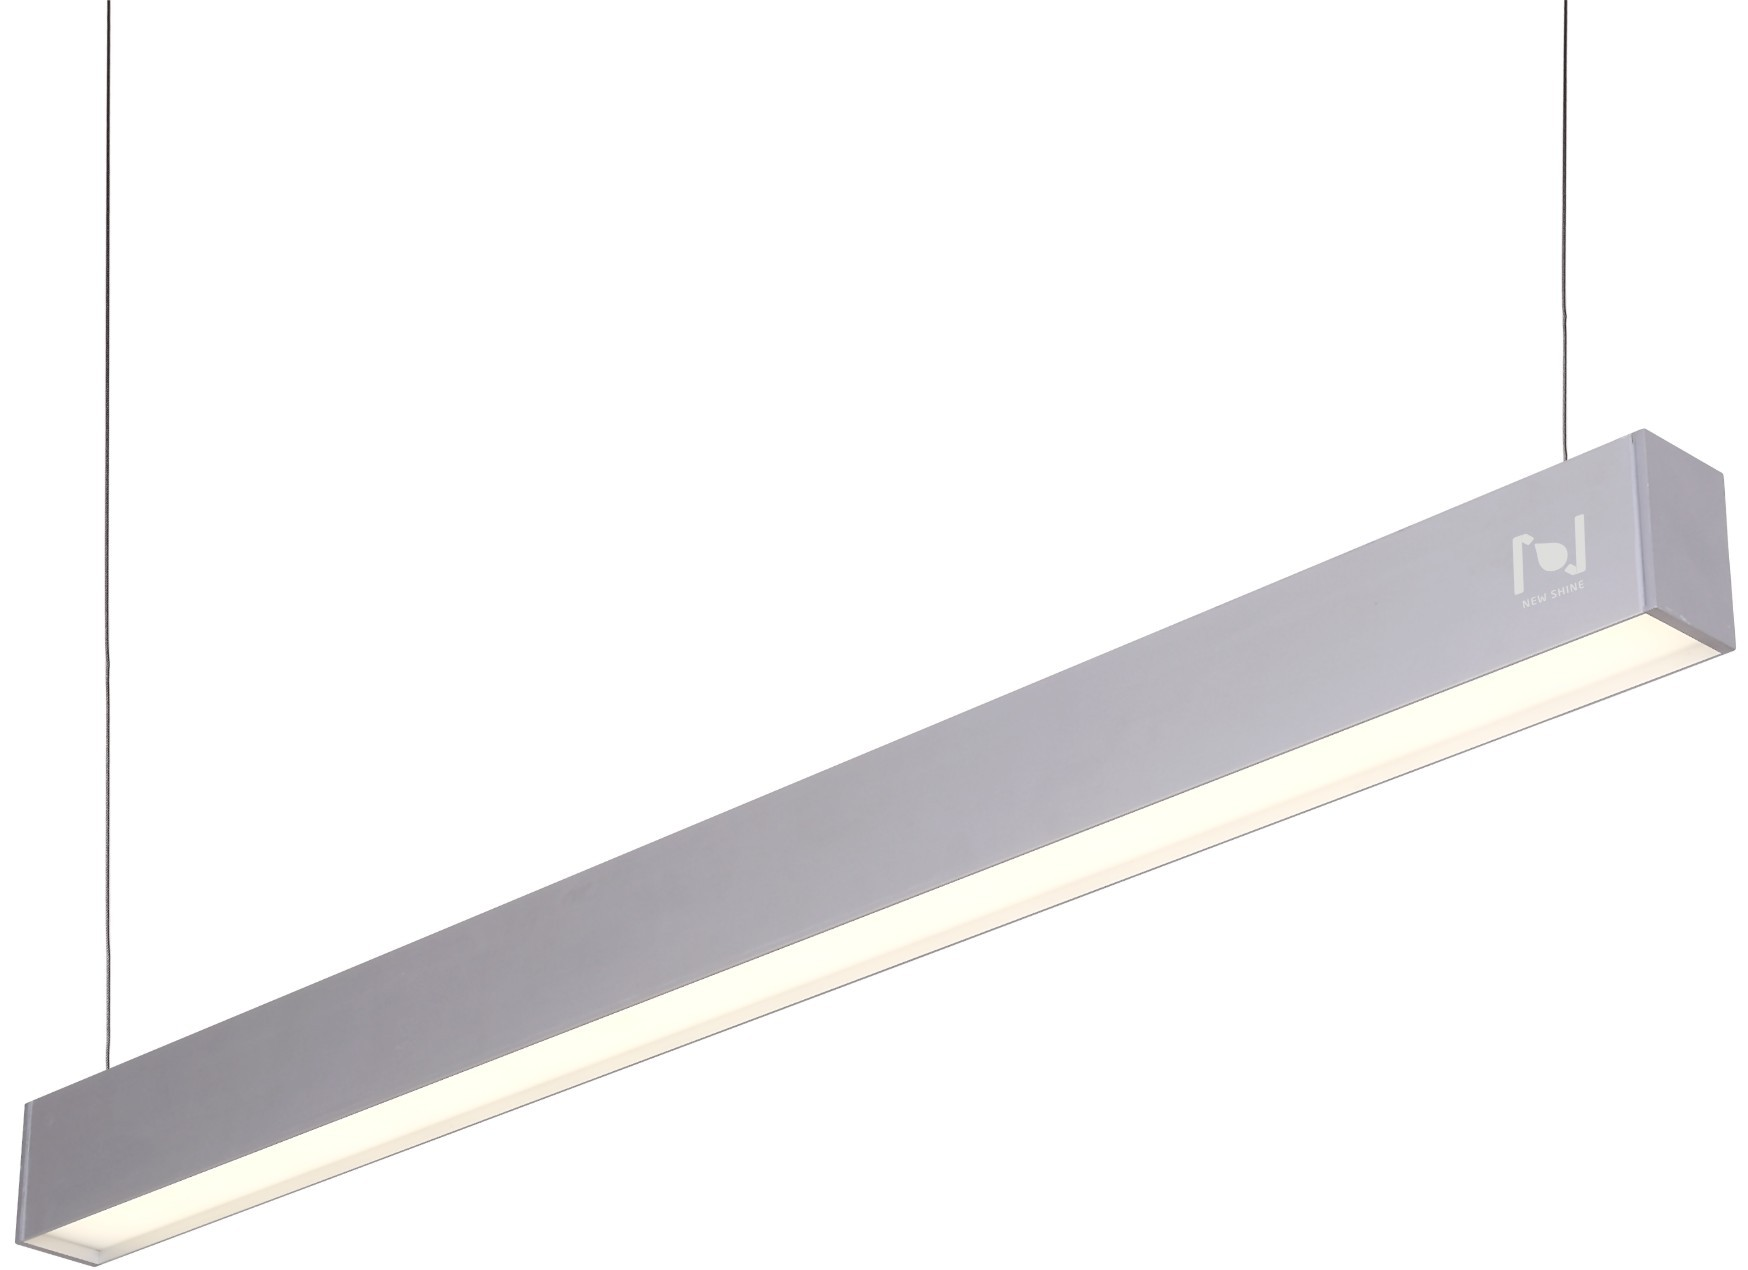 architectural lighting design LL010280S-80W